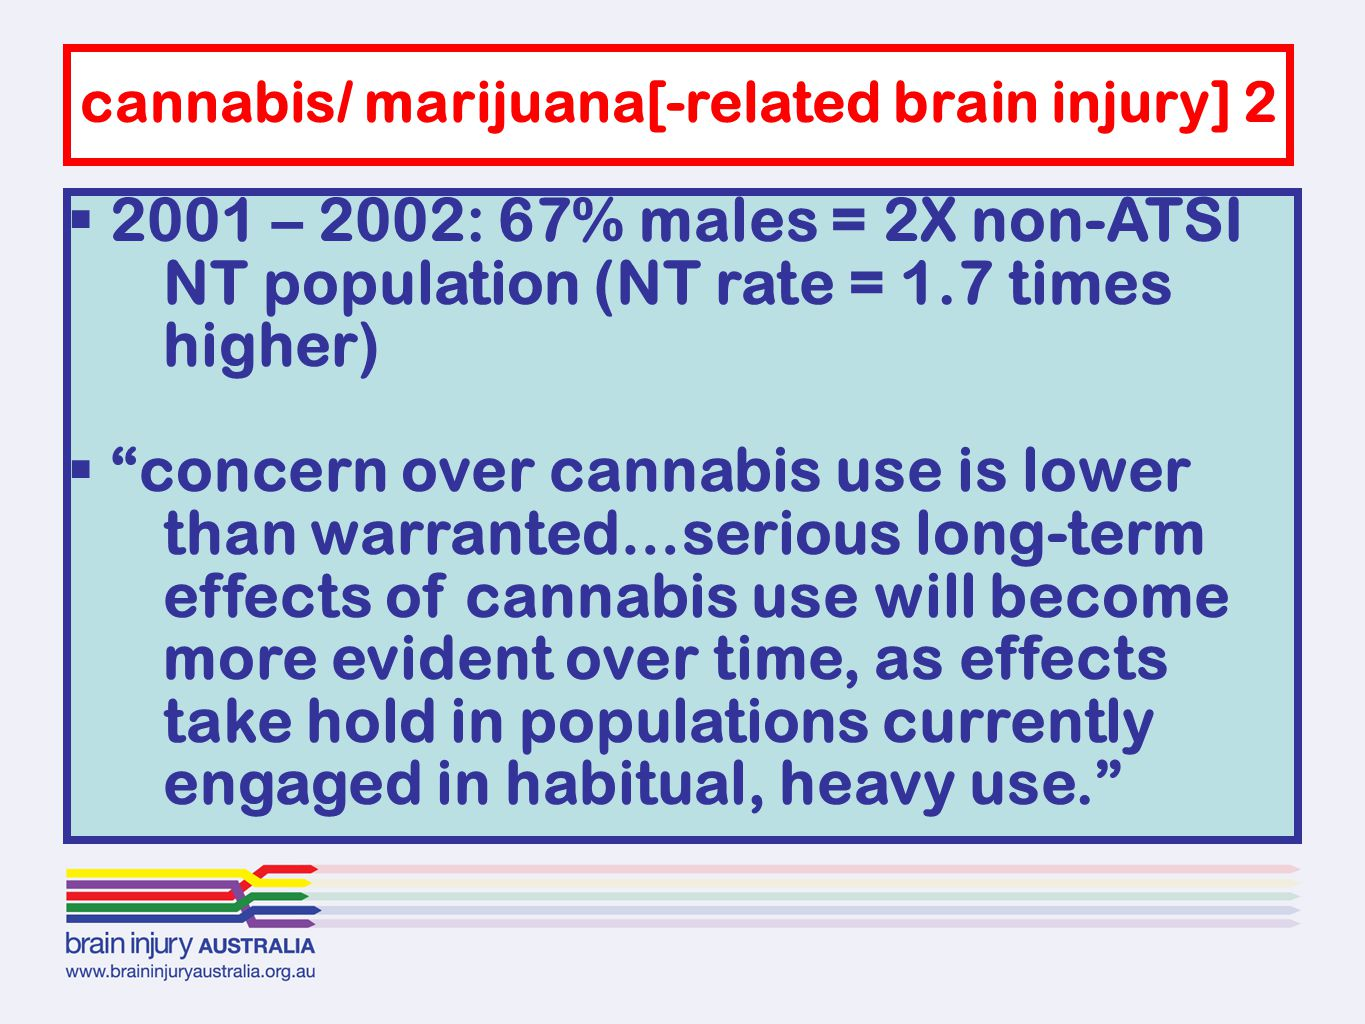  2001 – 2002: 67% males = 2X non-ATSI NT population (NT rate = 1.7 times higher)  concern over cannabis use is lower than warranted…serious long-term effects of cannabis use will become more evident over time, as effects take hold in populations currently engaged in habitual, heavy use. cannabis/ marijuana[-related brain injury] 2